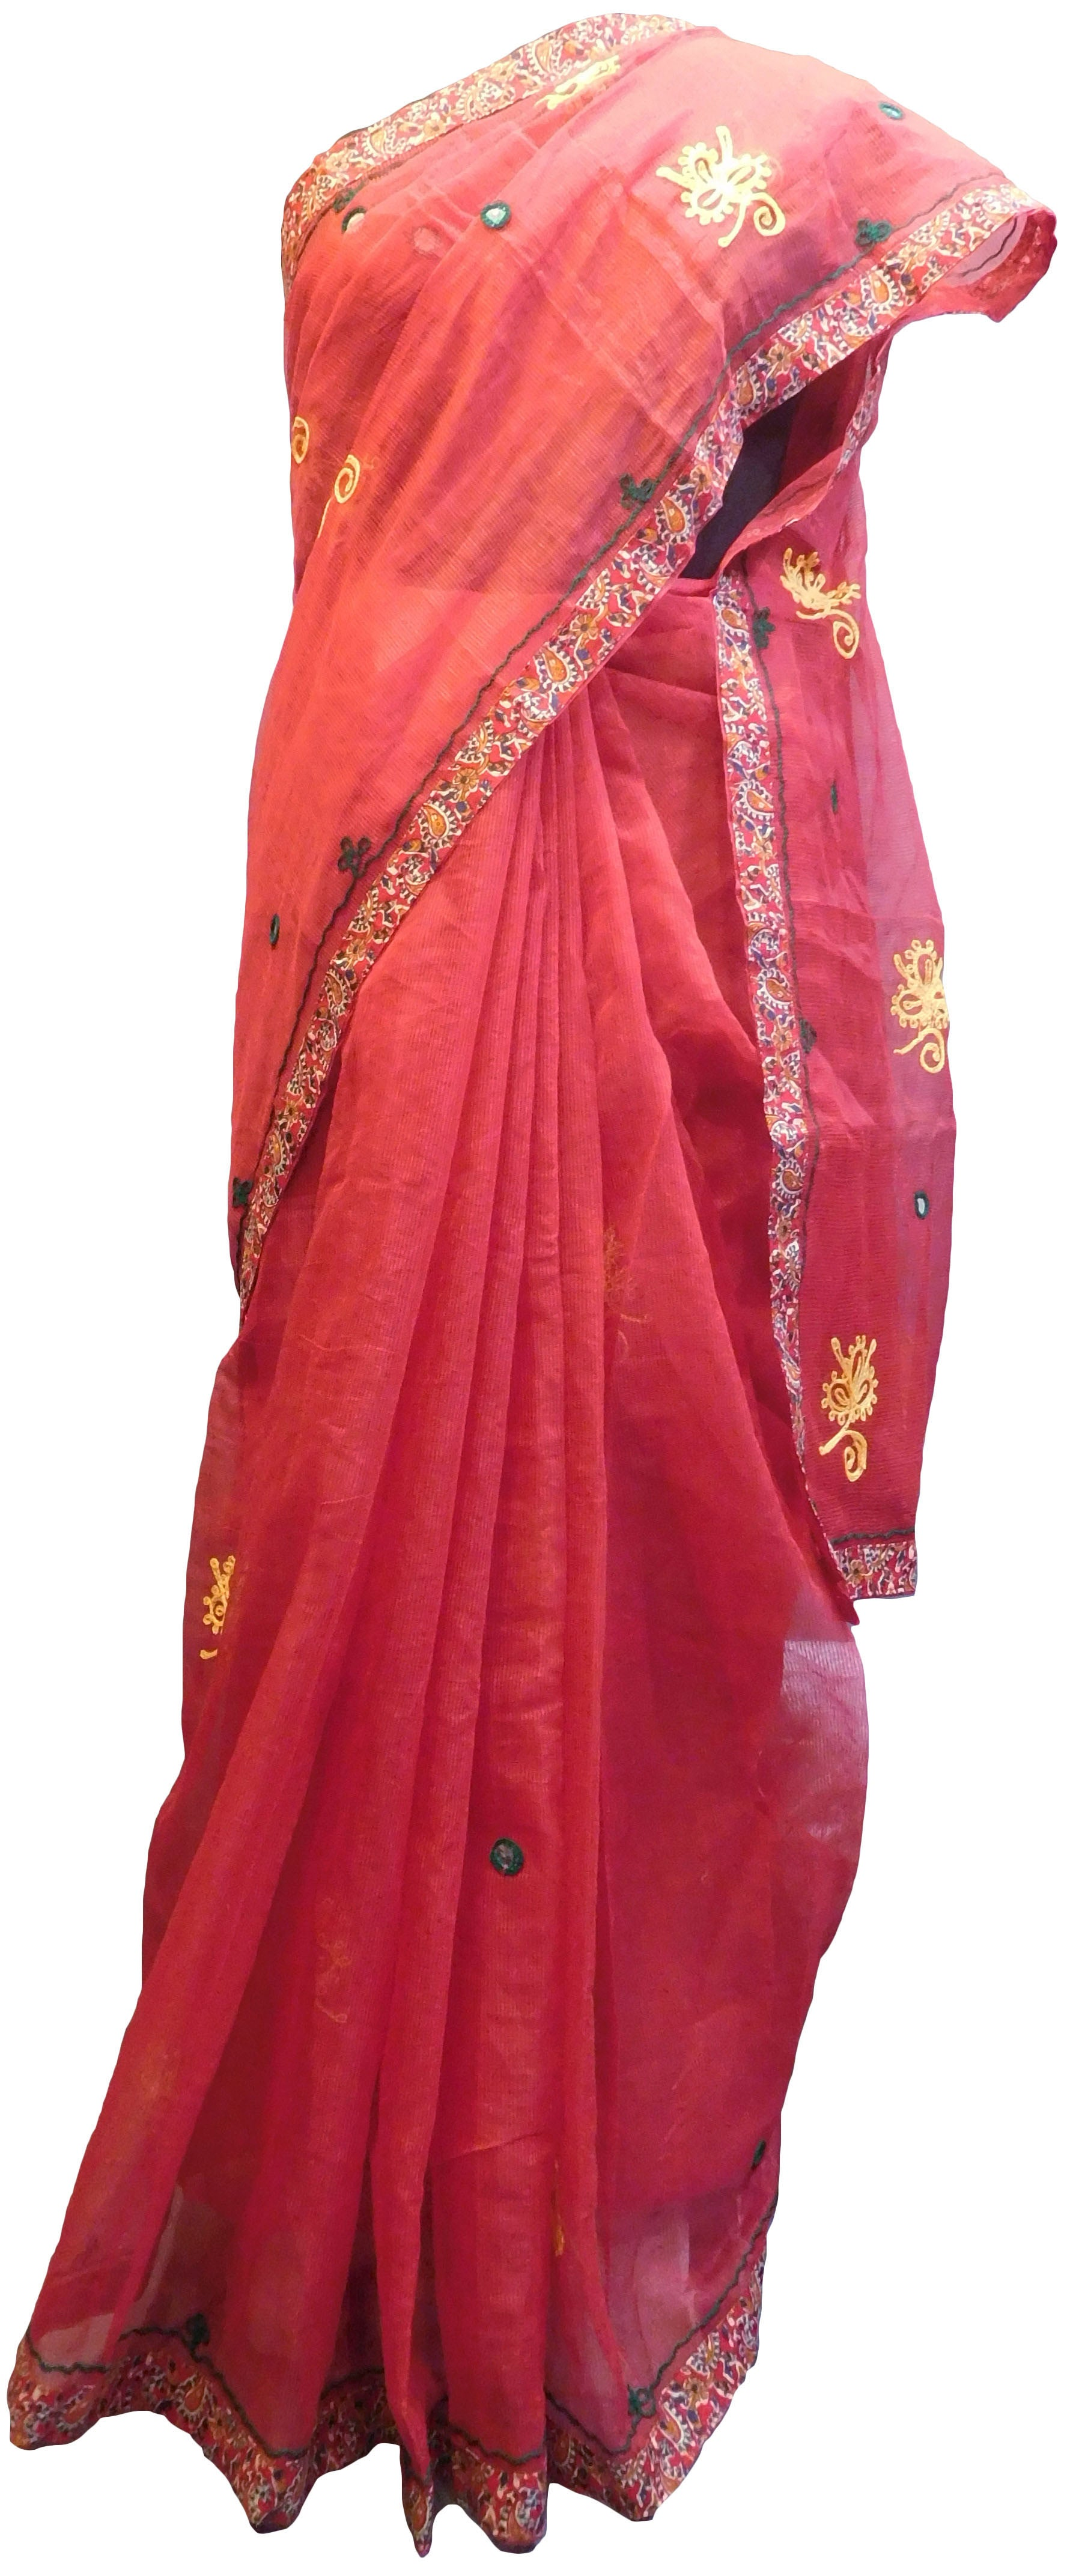 SMSAREE Red Designer Wedding Partywear Supernet (Cotton) Thread Hand Embroidery Work Bridal Saree Sari With Blouse Piece E926